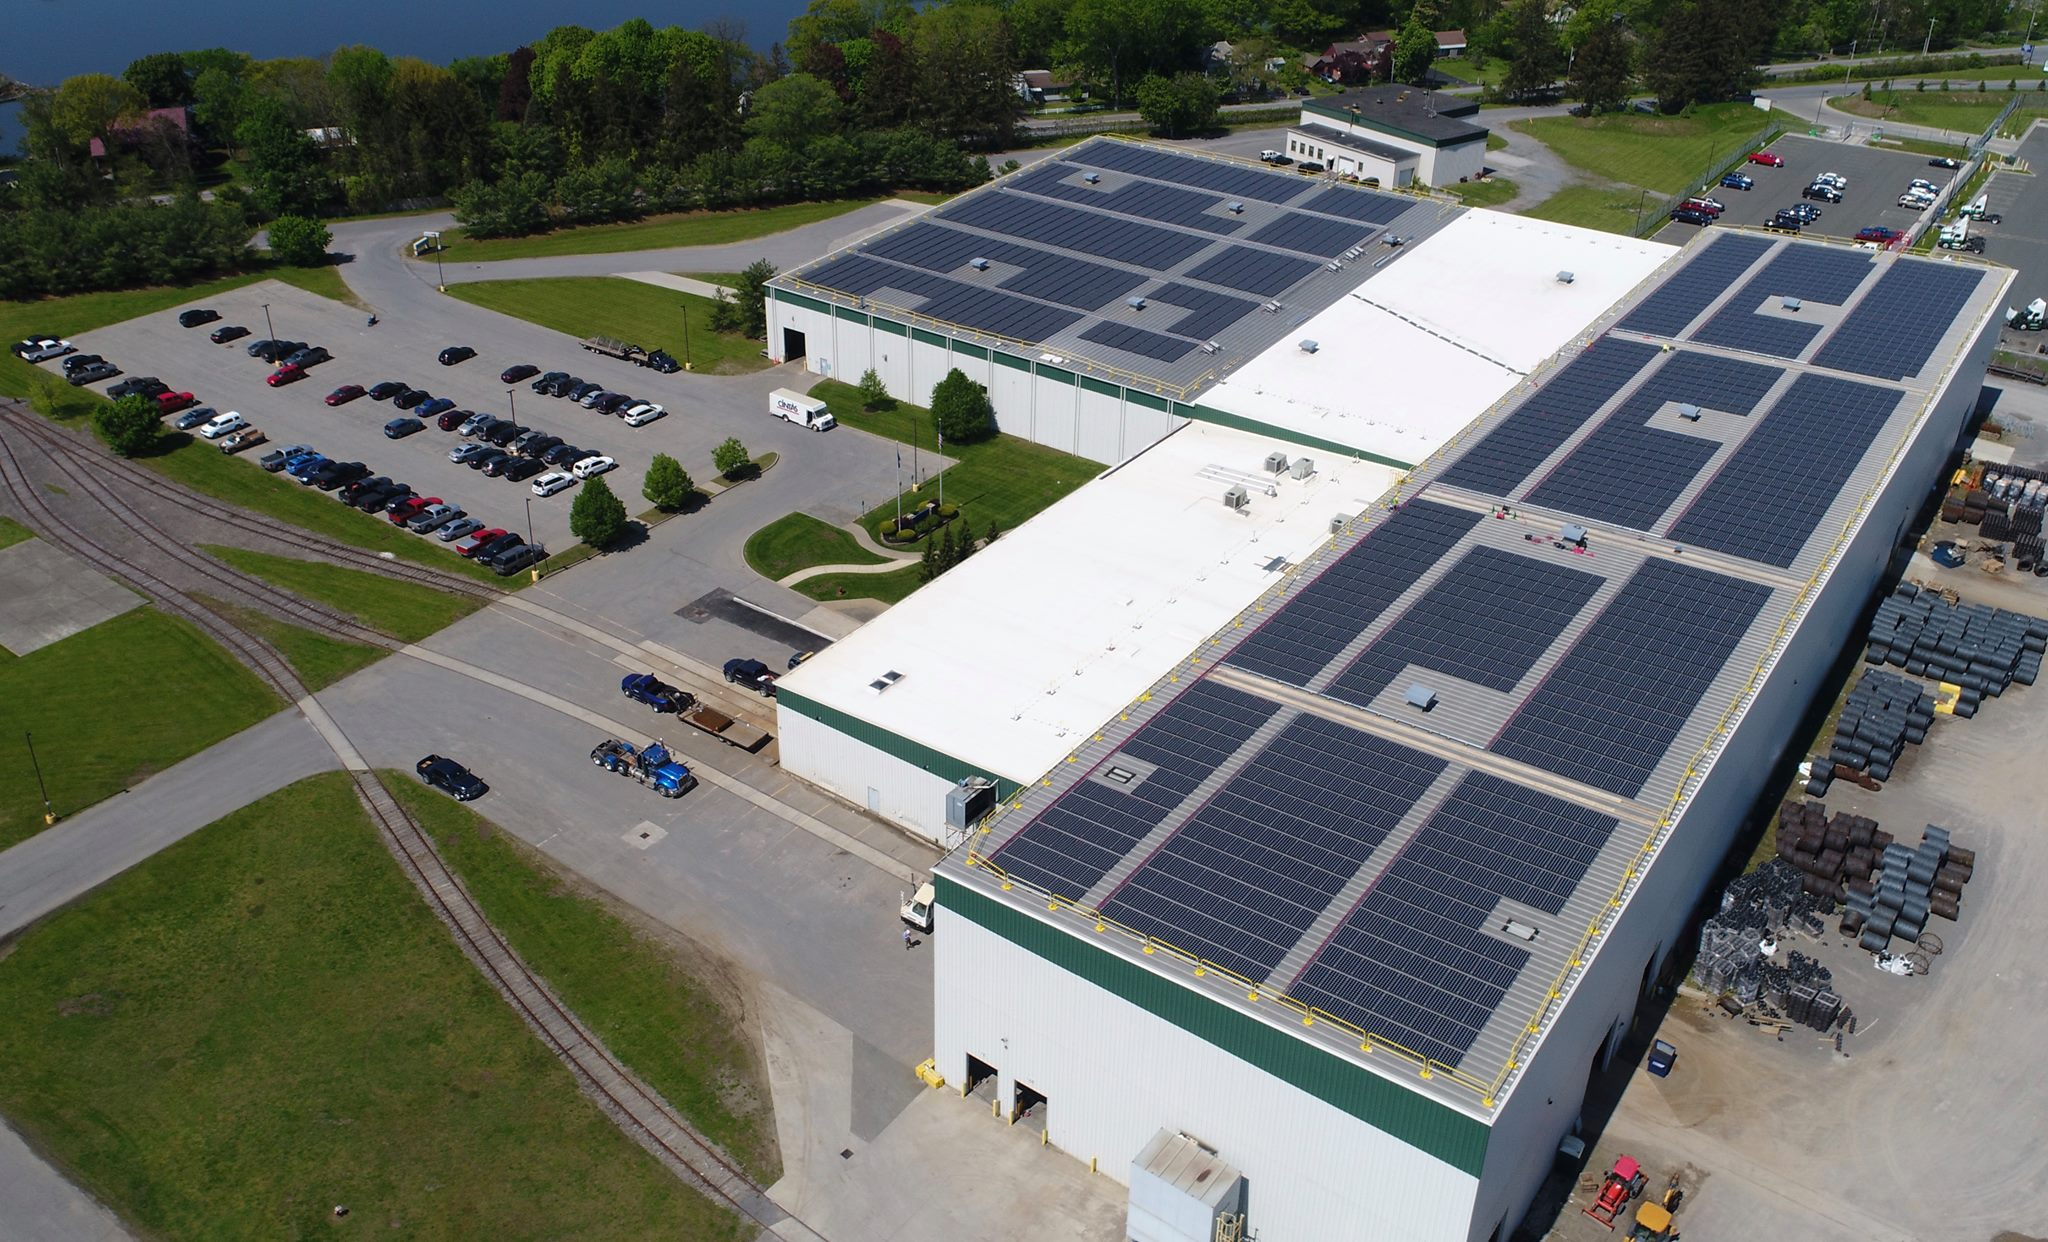 Generating almost 1MW of power, this solar PV array will provide Dimension Fabricators all its electrical needs. Courtesy image: Dimension Fabricators, Inc.